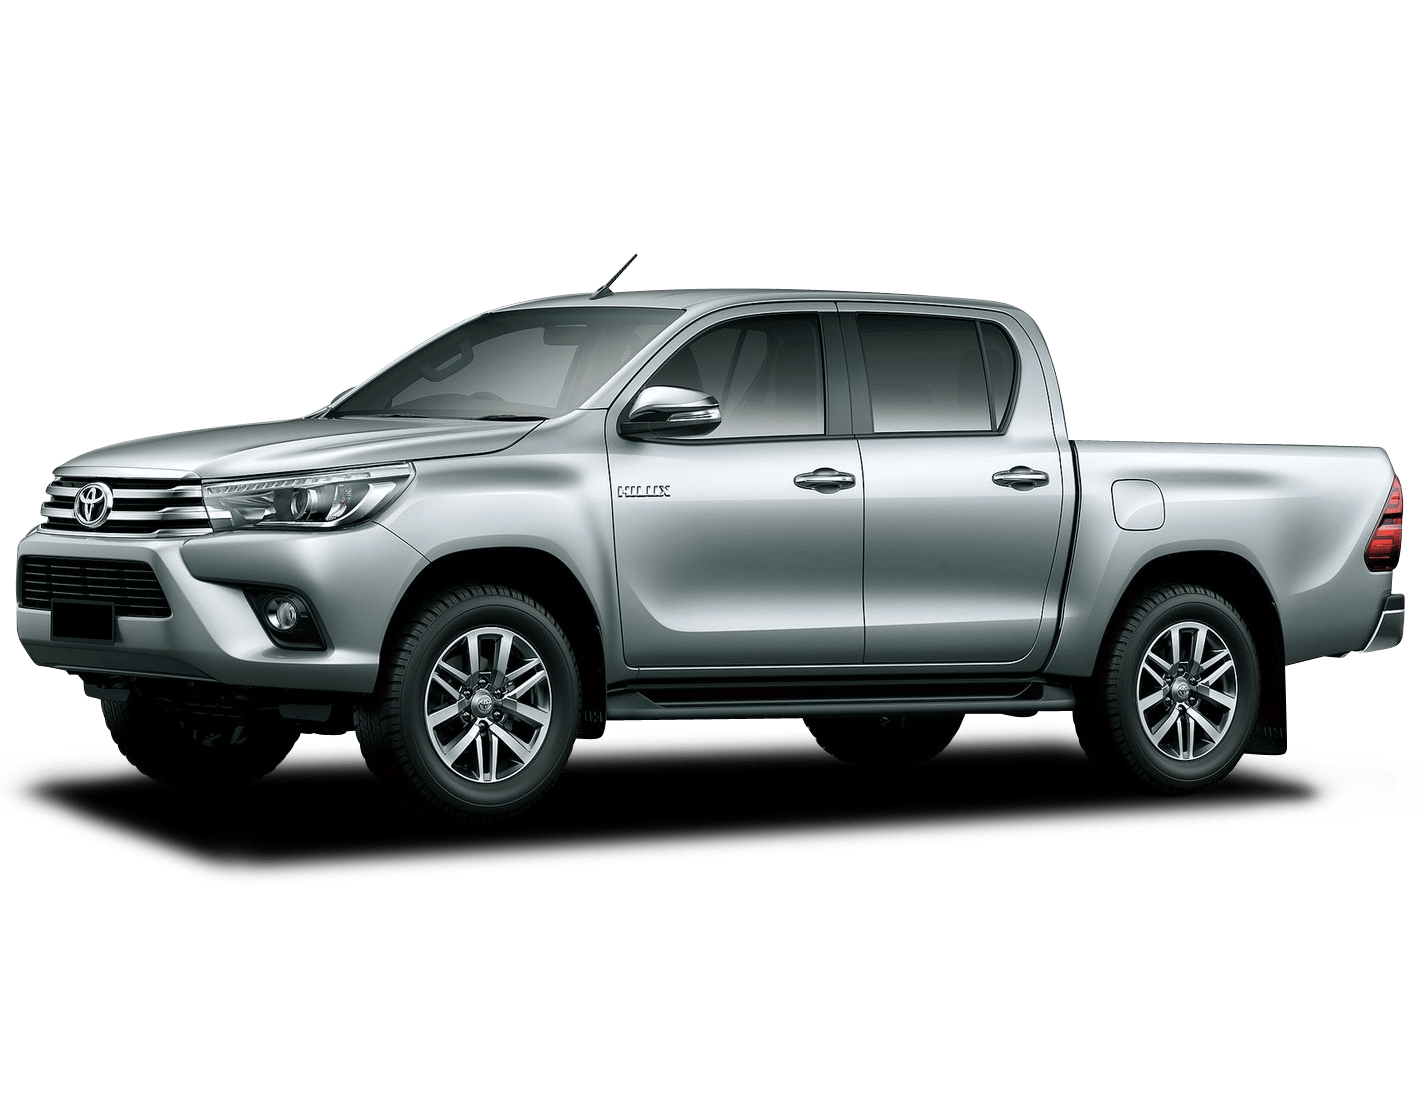 Isuzu D Max 2018 Review Sx 4x4 Single Cab Chassis Carsguide Toyota Hilux Problems Tata Xenon